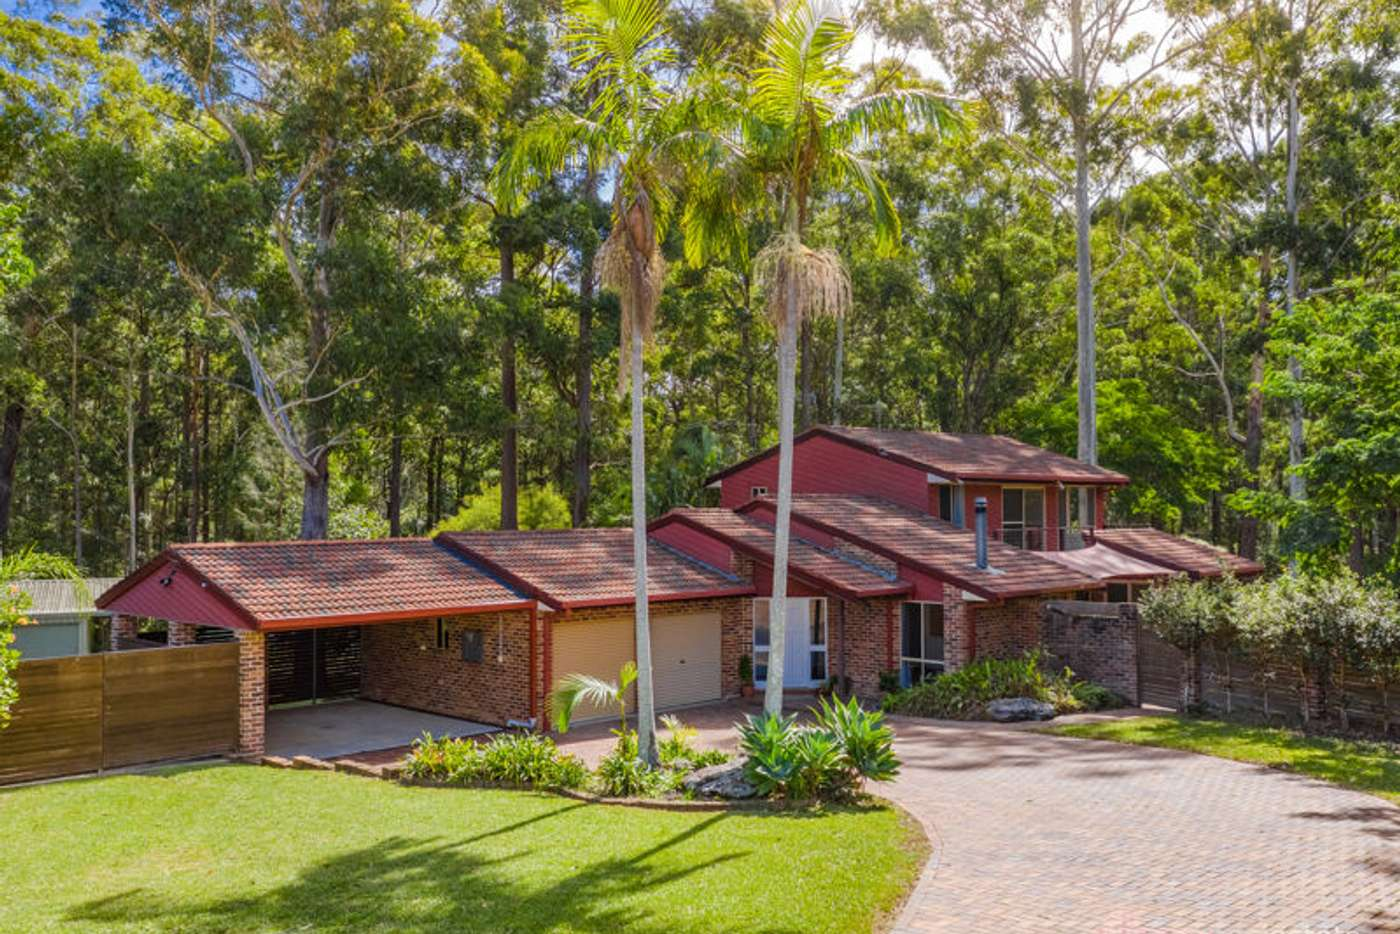 Main view of Homely house listing, 6 Gwen Close, Emerald Beach NSW 2456